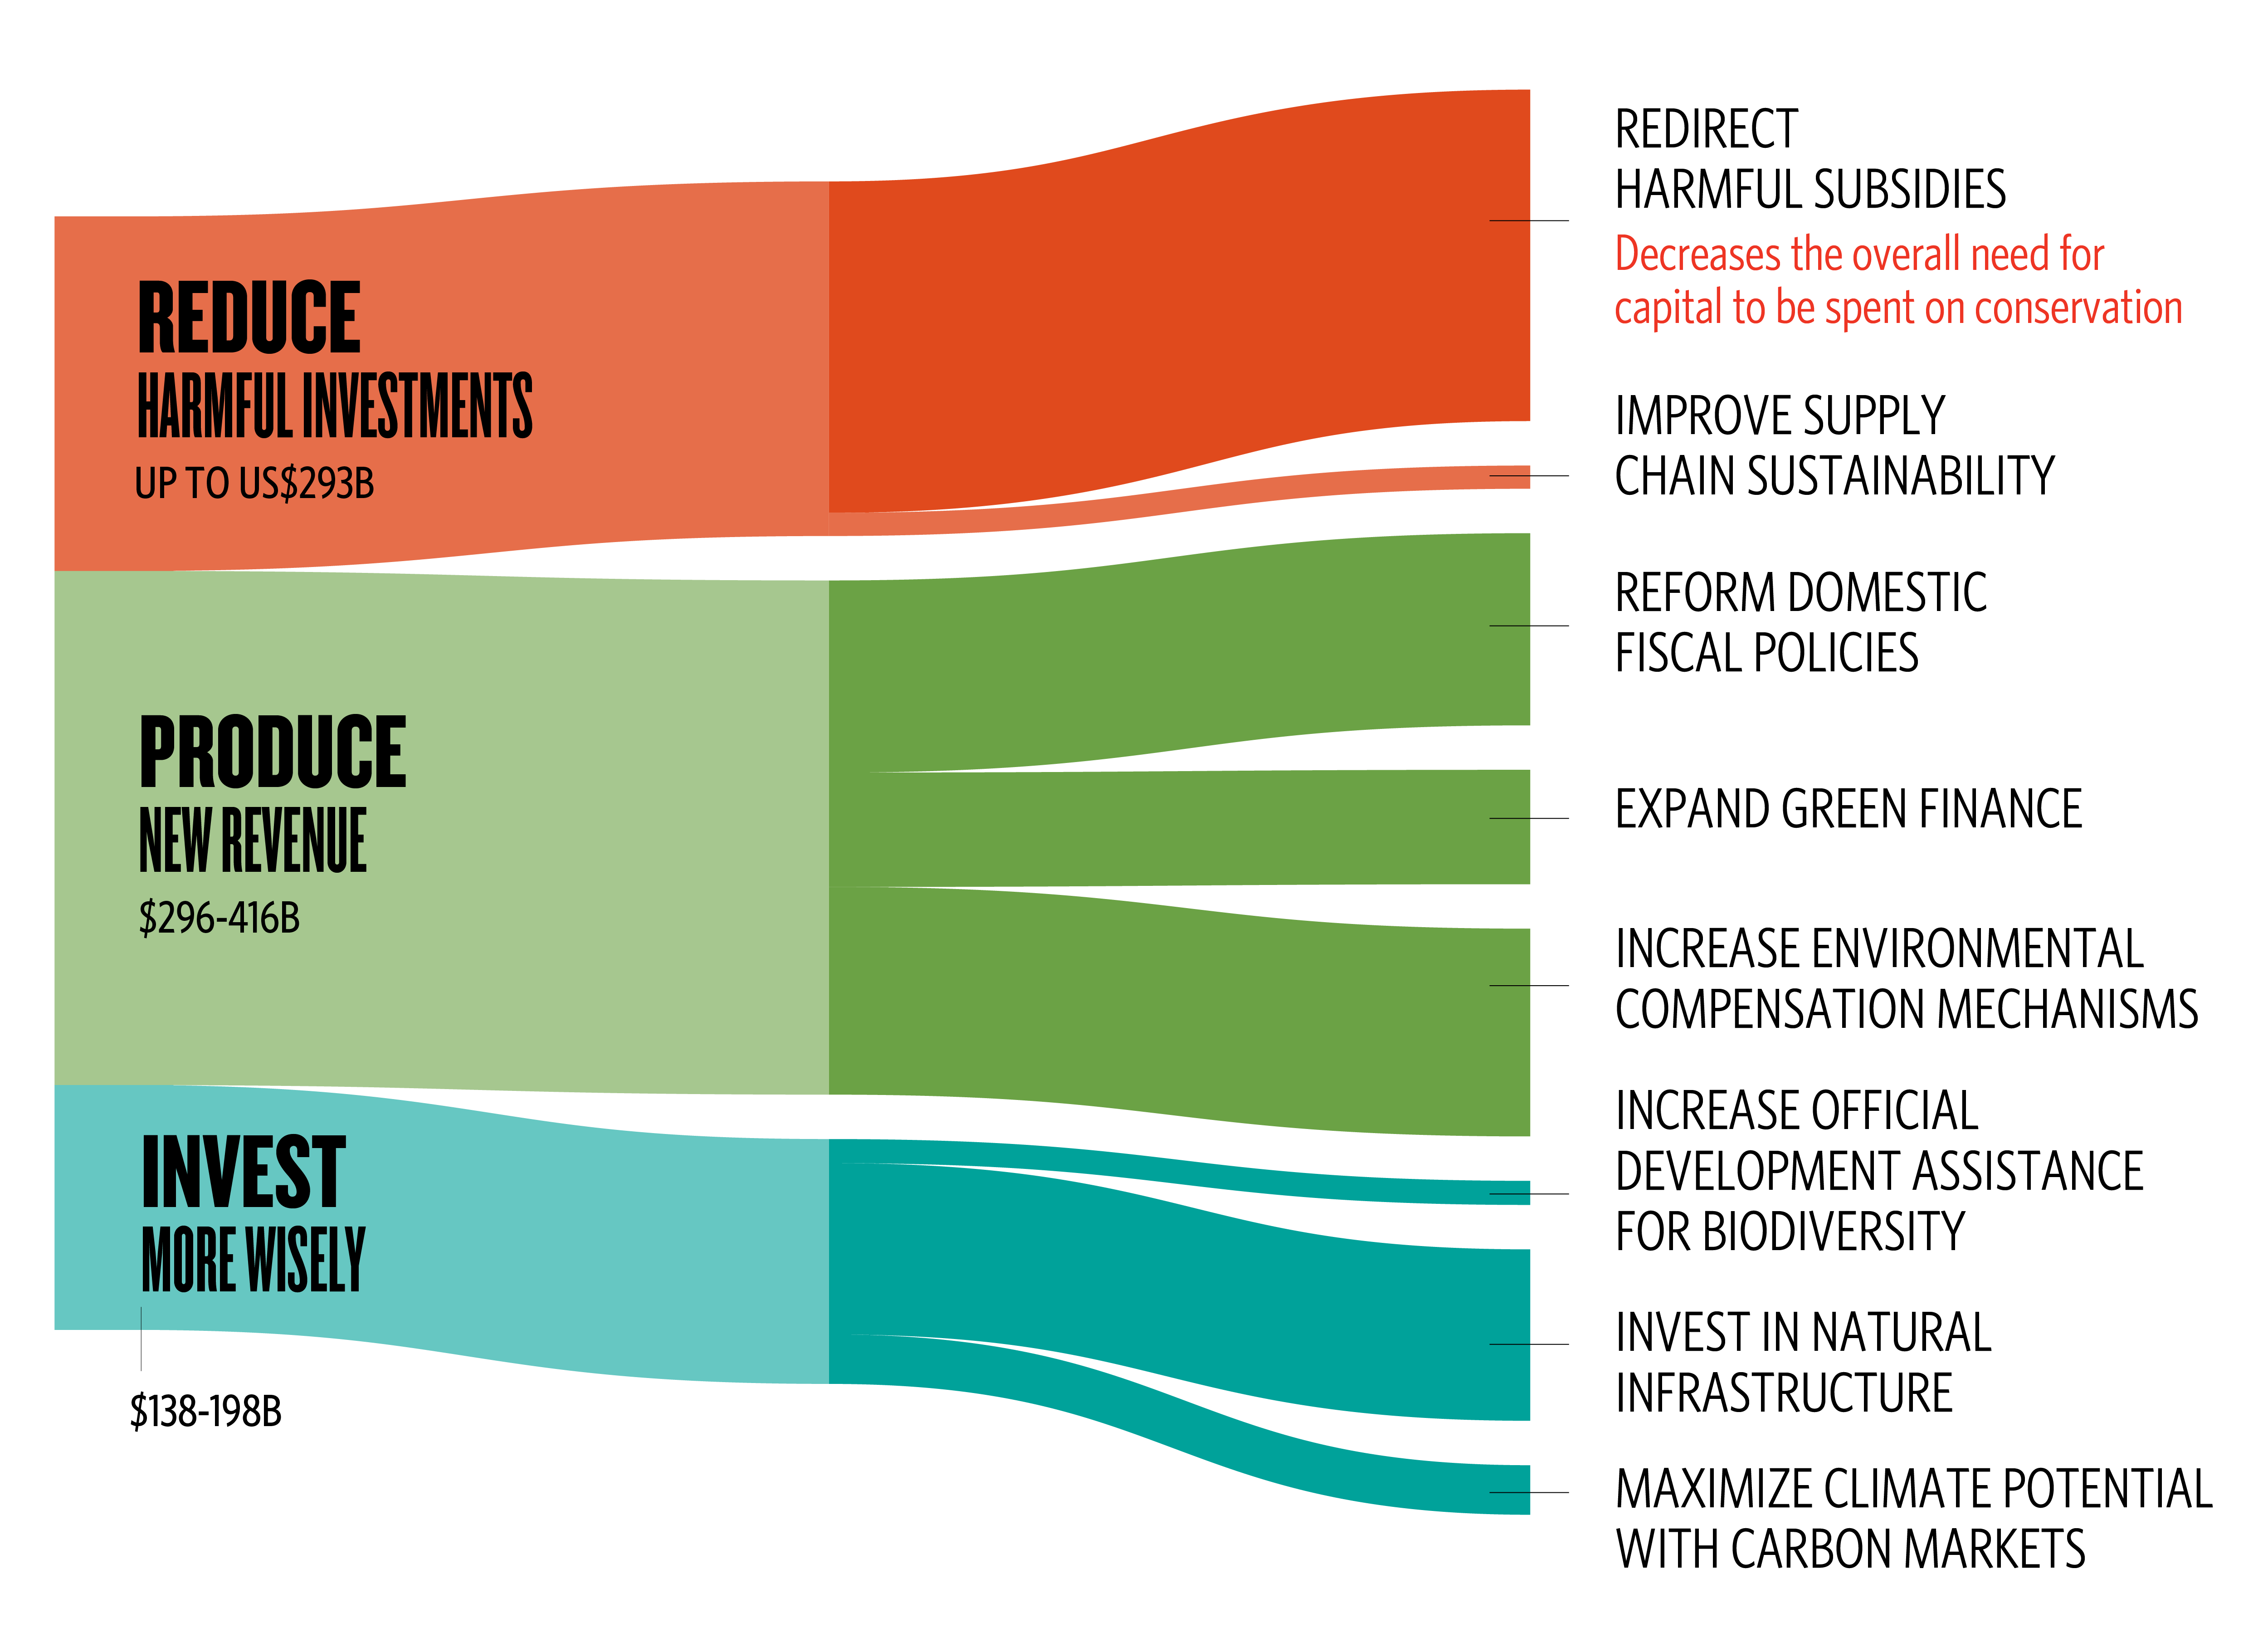 a sankey diagram showing three groupings (Reduce Harmful Investments, Produce New Revenue, Invest More Wisely) flowing into eight financial mechanisms